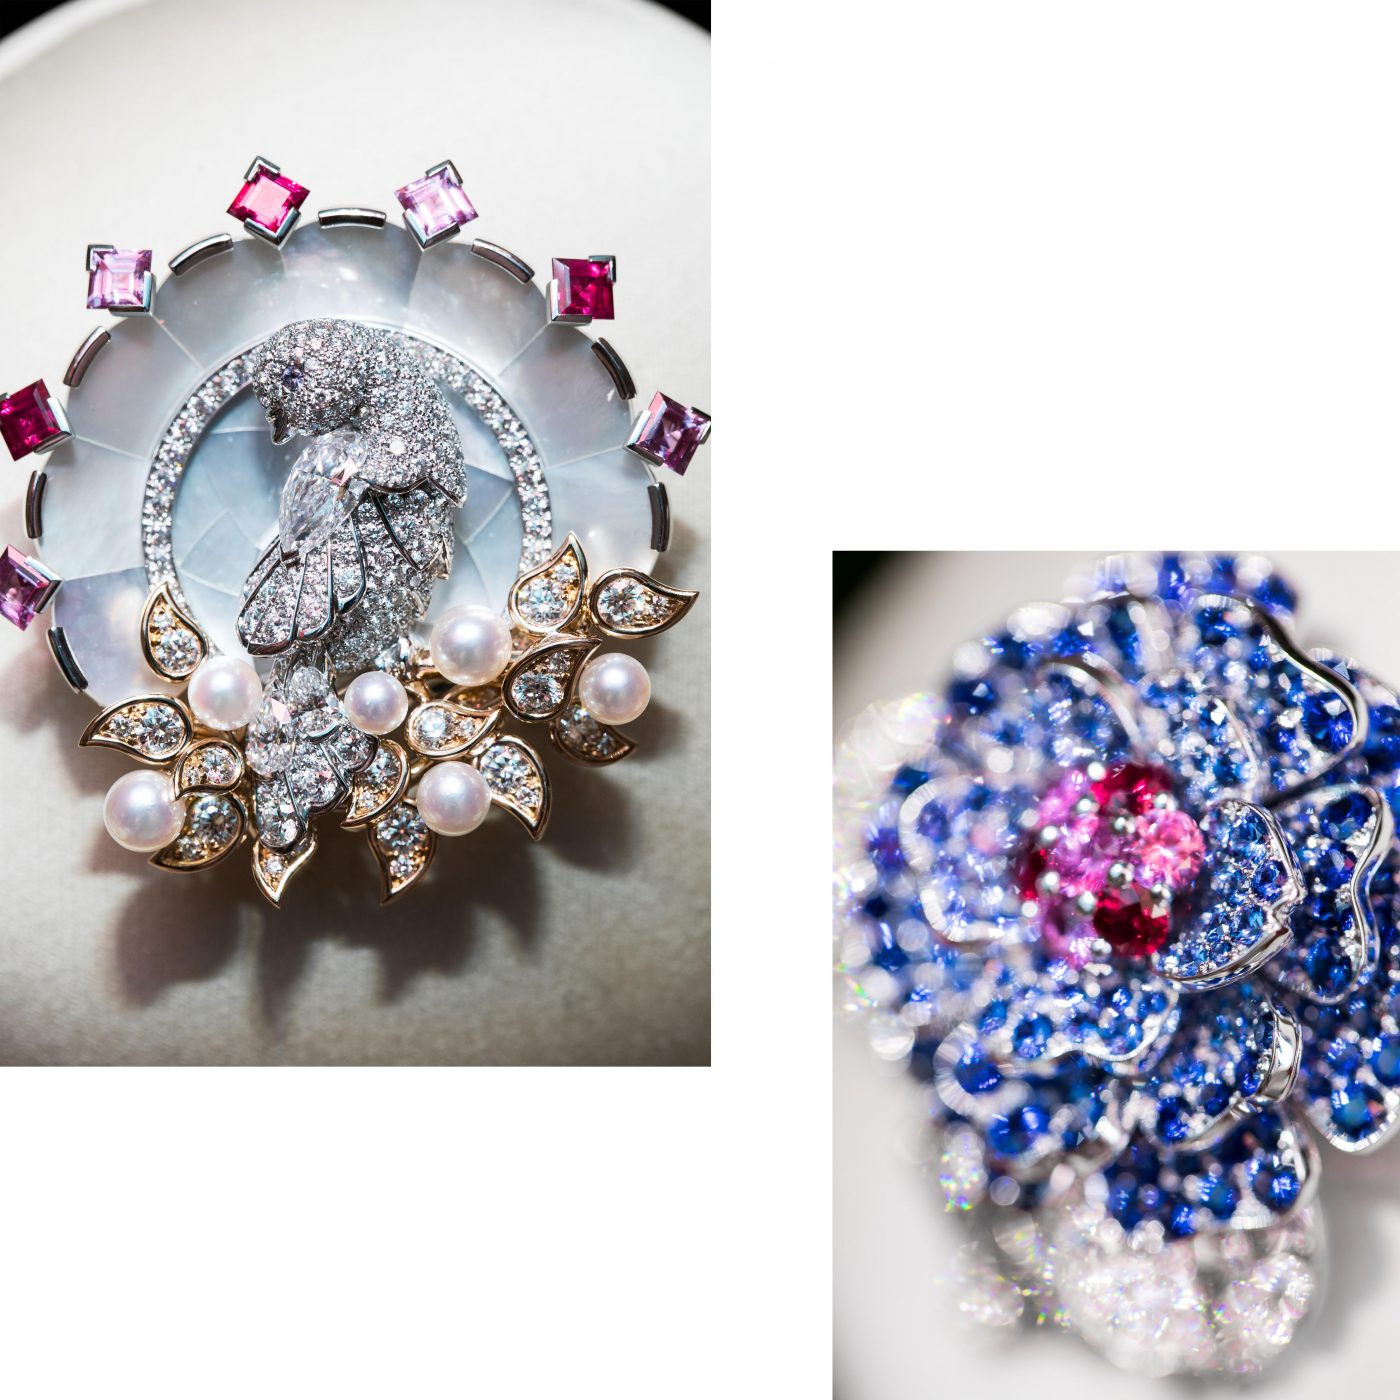 "VAN CLEEF & ARPELS ""ROMEO & JULIET"" HIGH JEWELLERY COLLECTION, PARIS COUTURE WEEK 2019, Victoria's Jewelry Box"